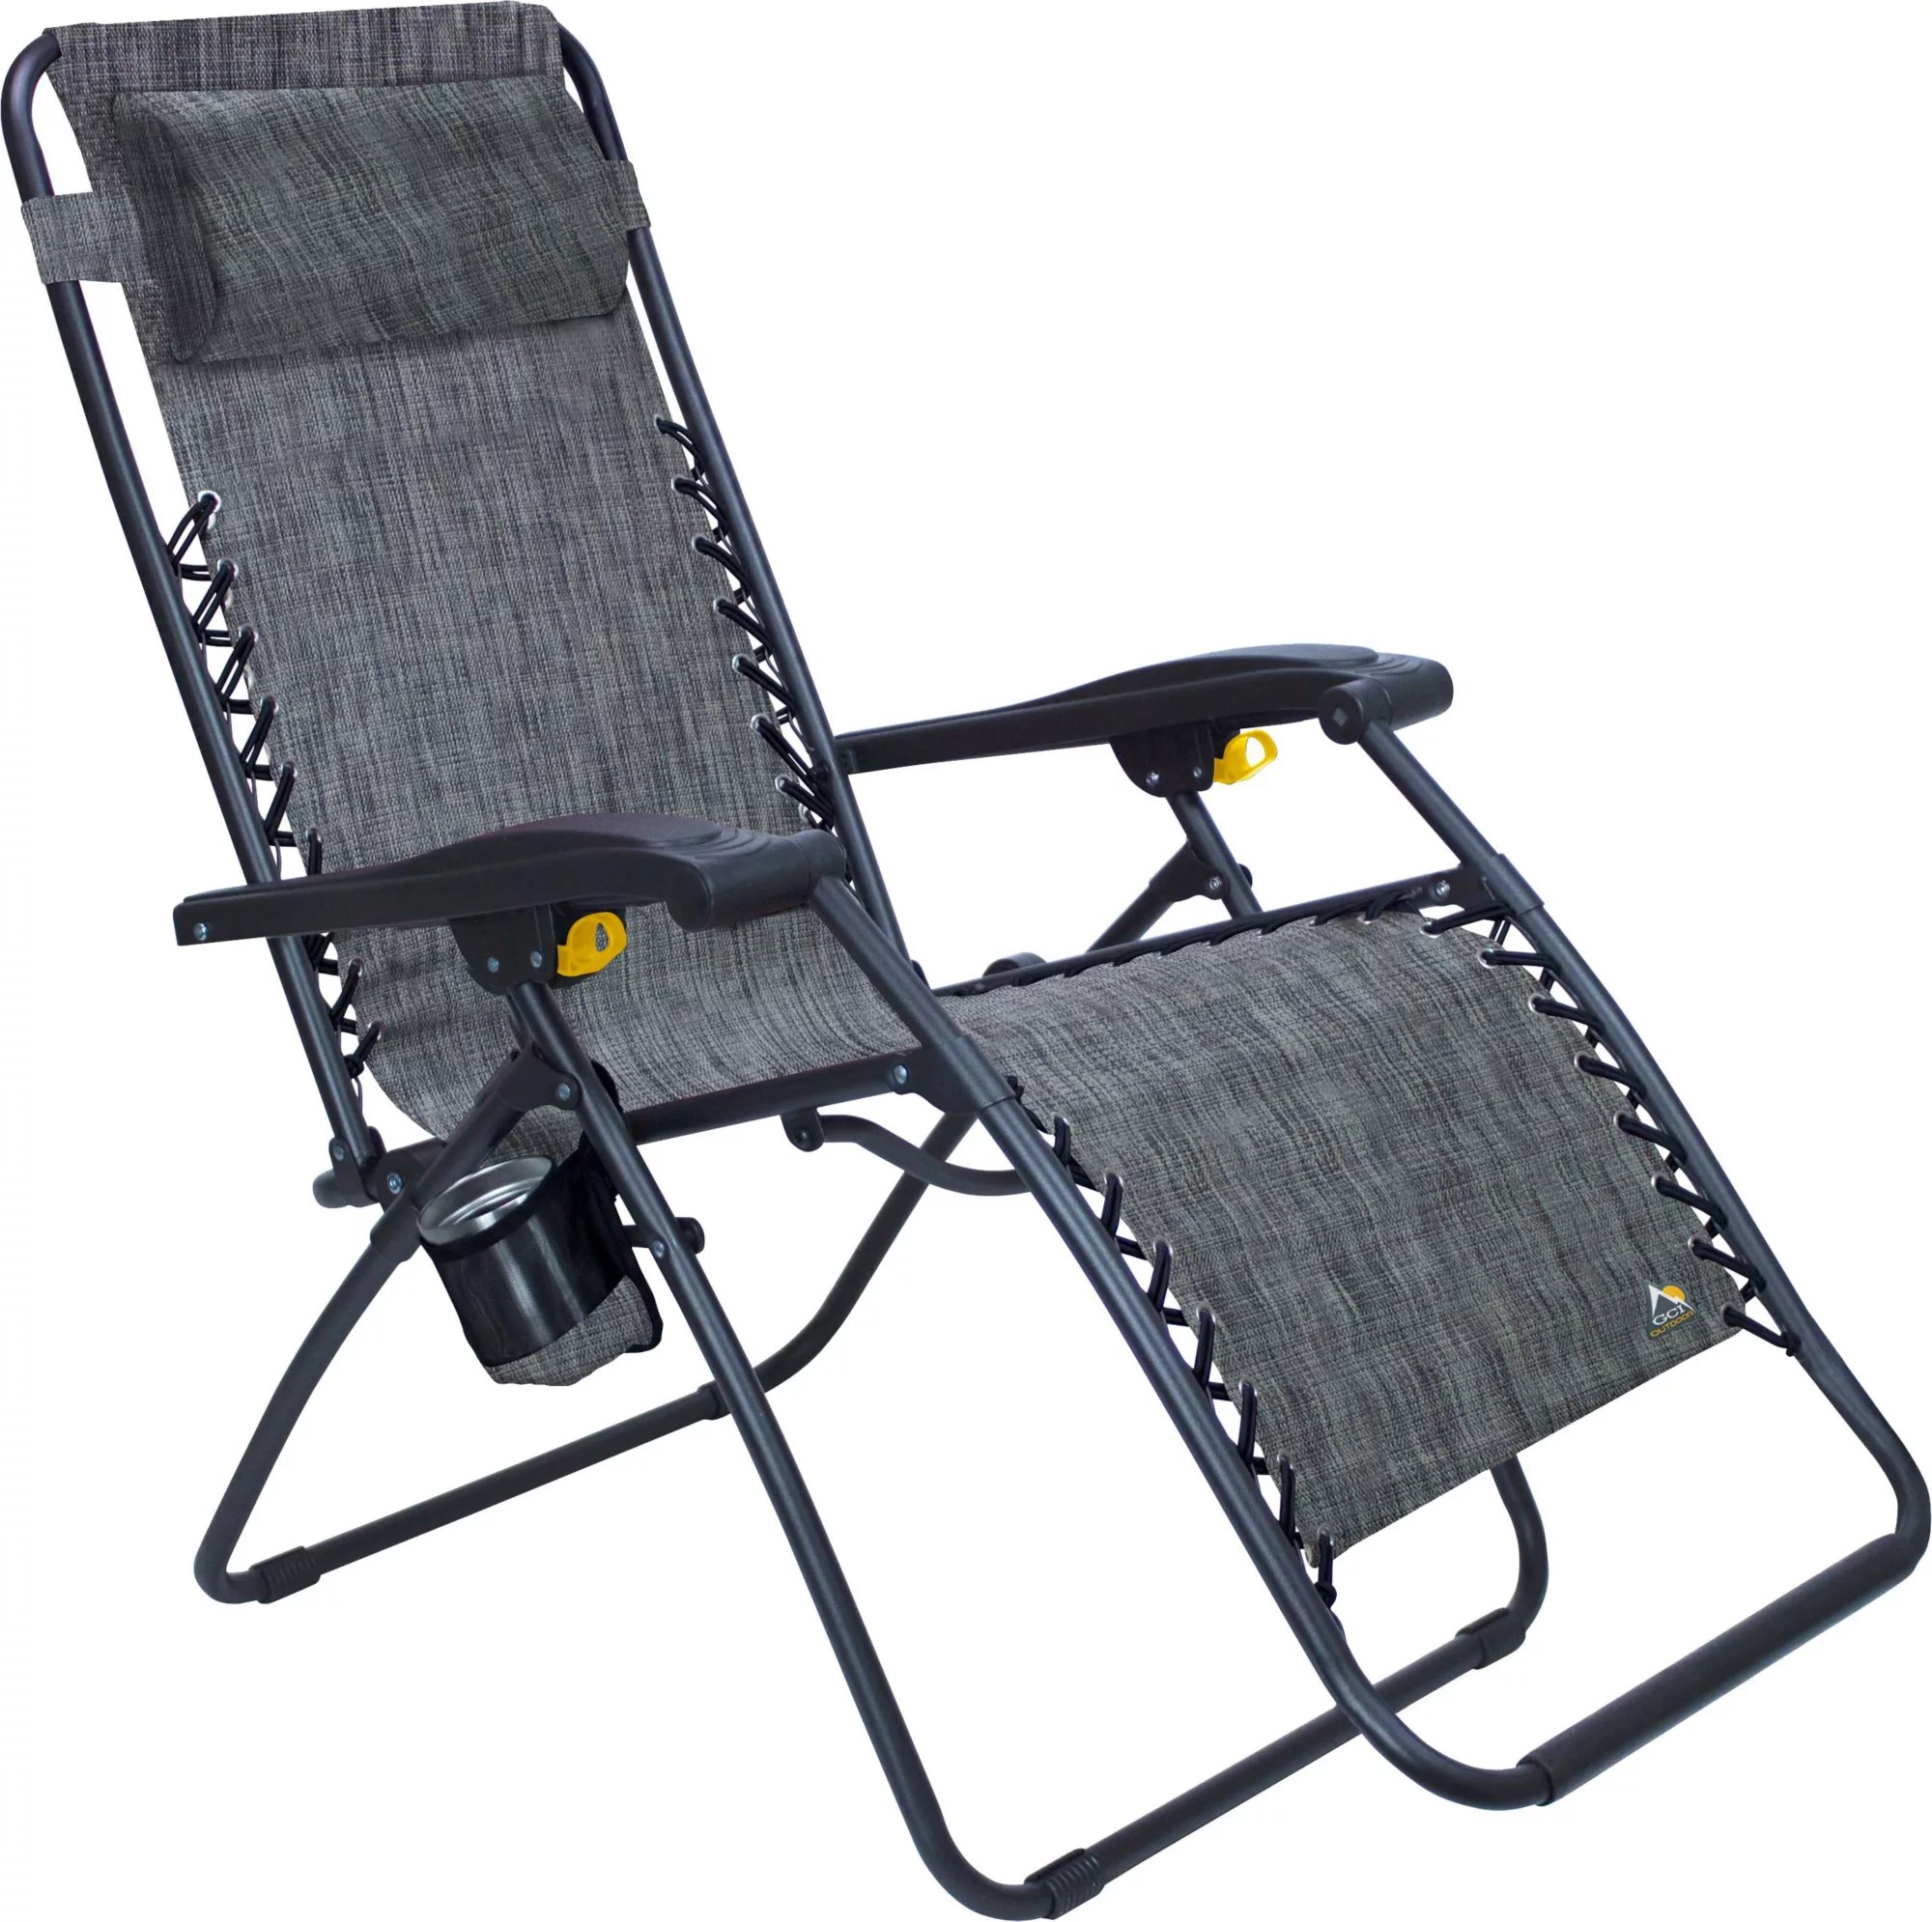 sonoma anti gravity chair review covered beach chairs zero bruin blog